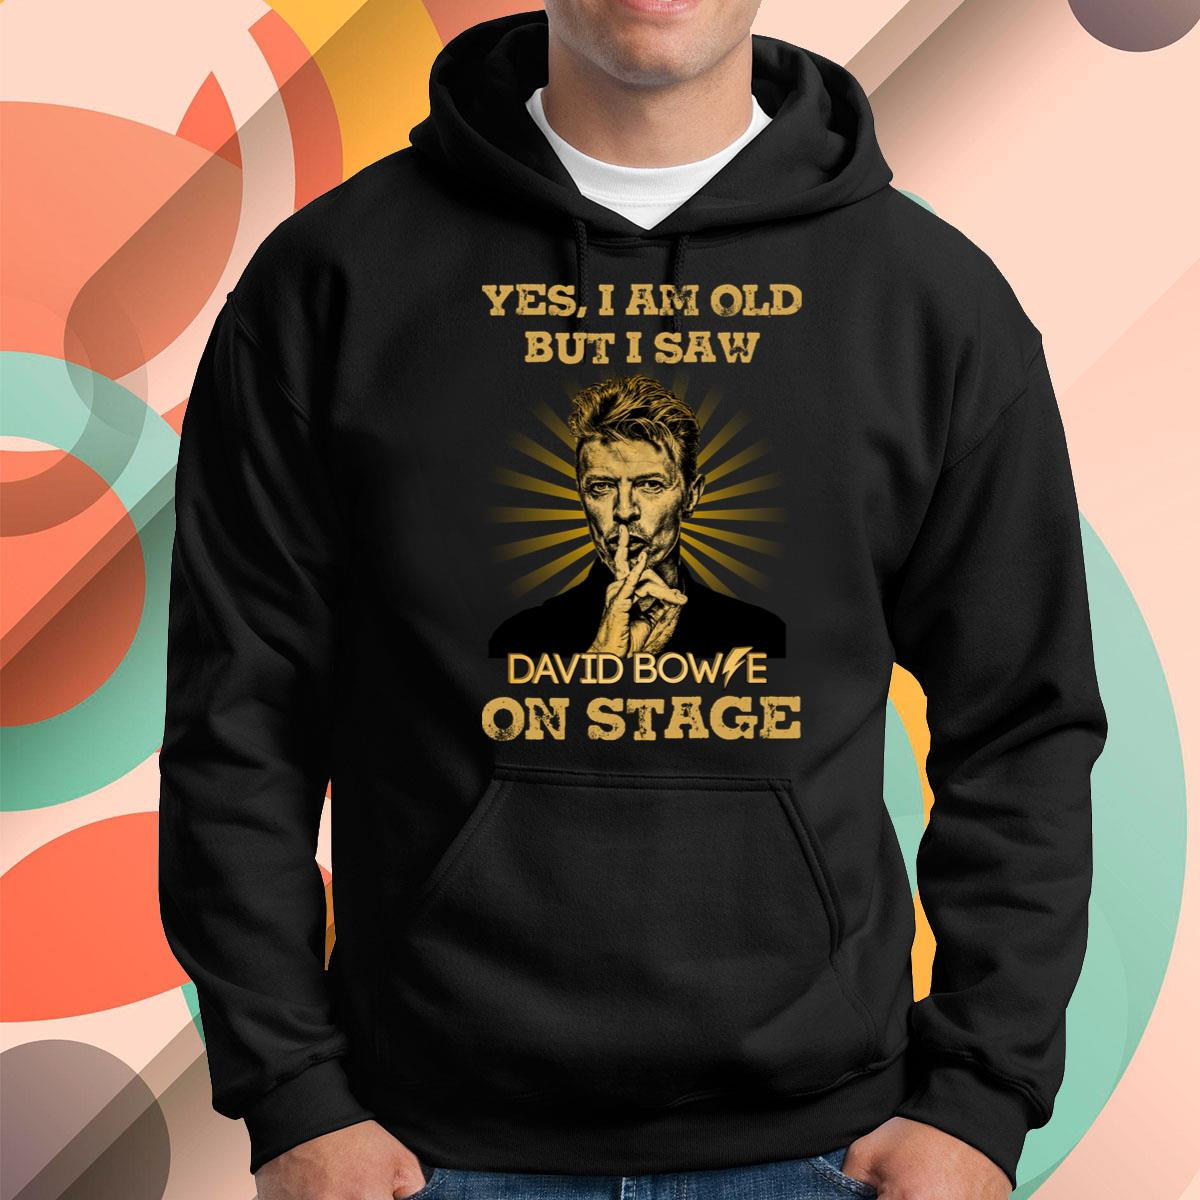 I Am Old But I Saw David Bowie Pullover Hoodie